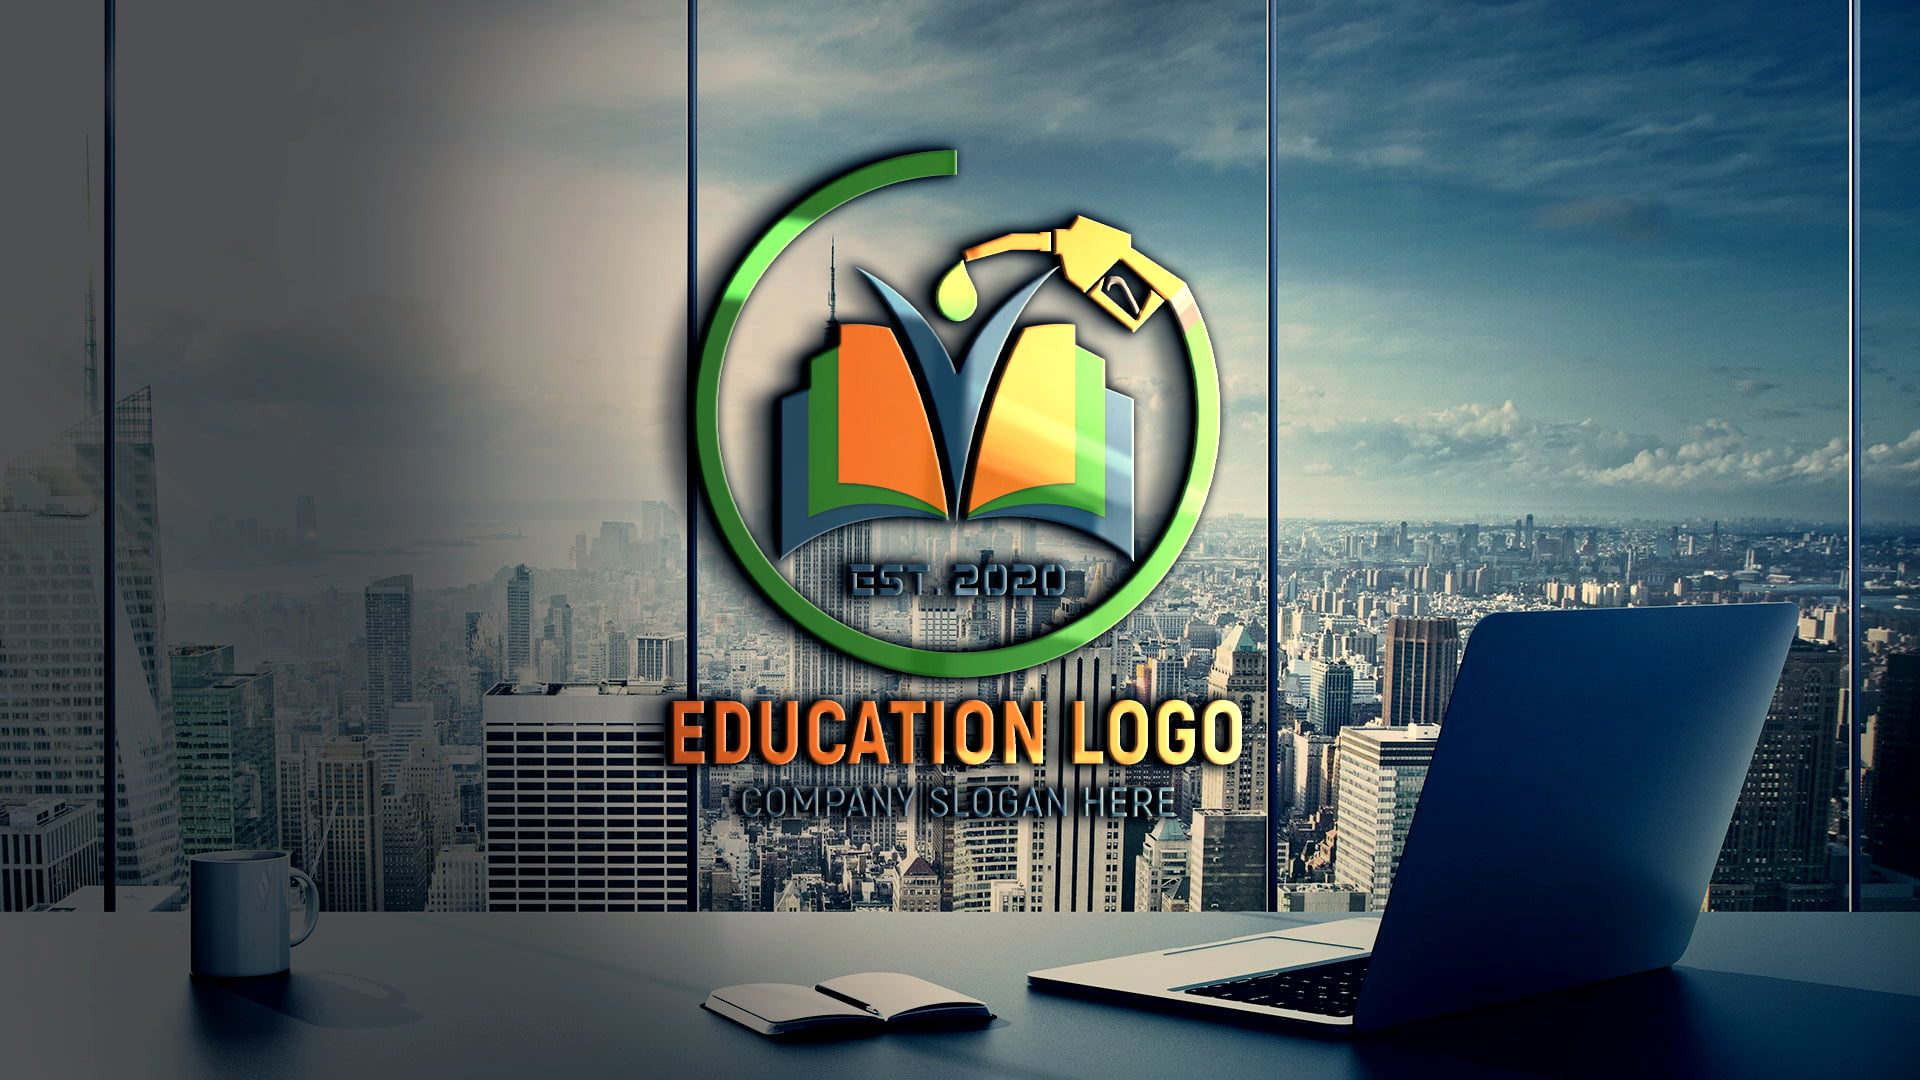 Fueling Education Logo Design on transparent wall